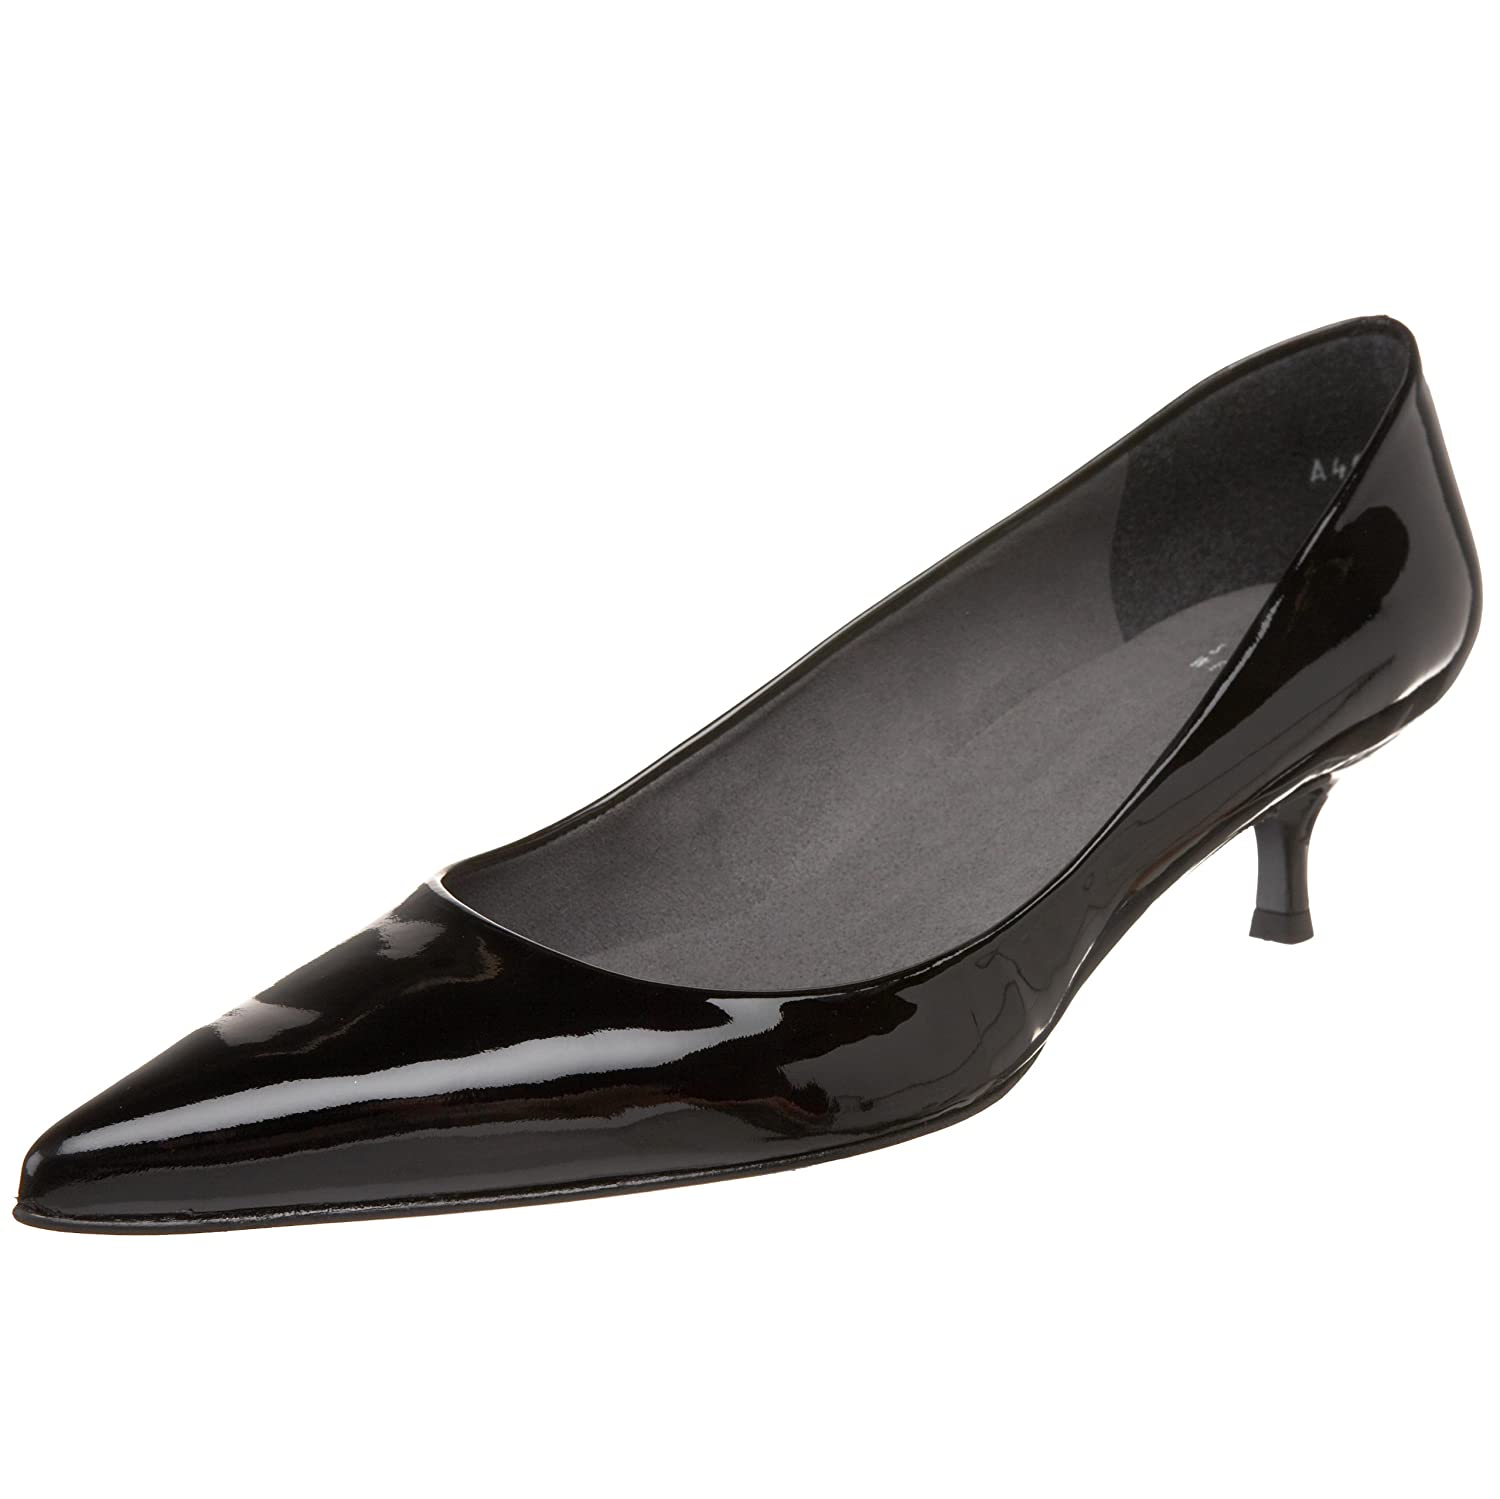 Stuart Weitzman Women's Poco Dress Pump B0031573R4 11 W US|Black Patent